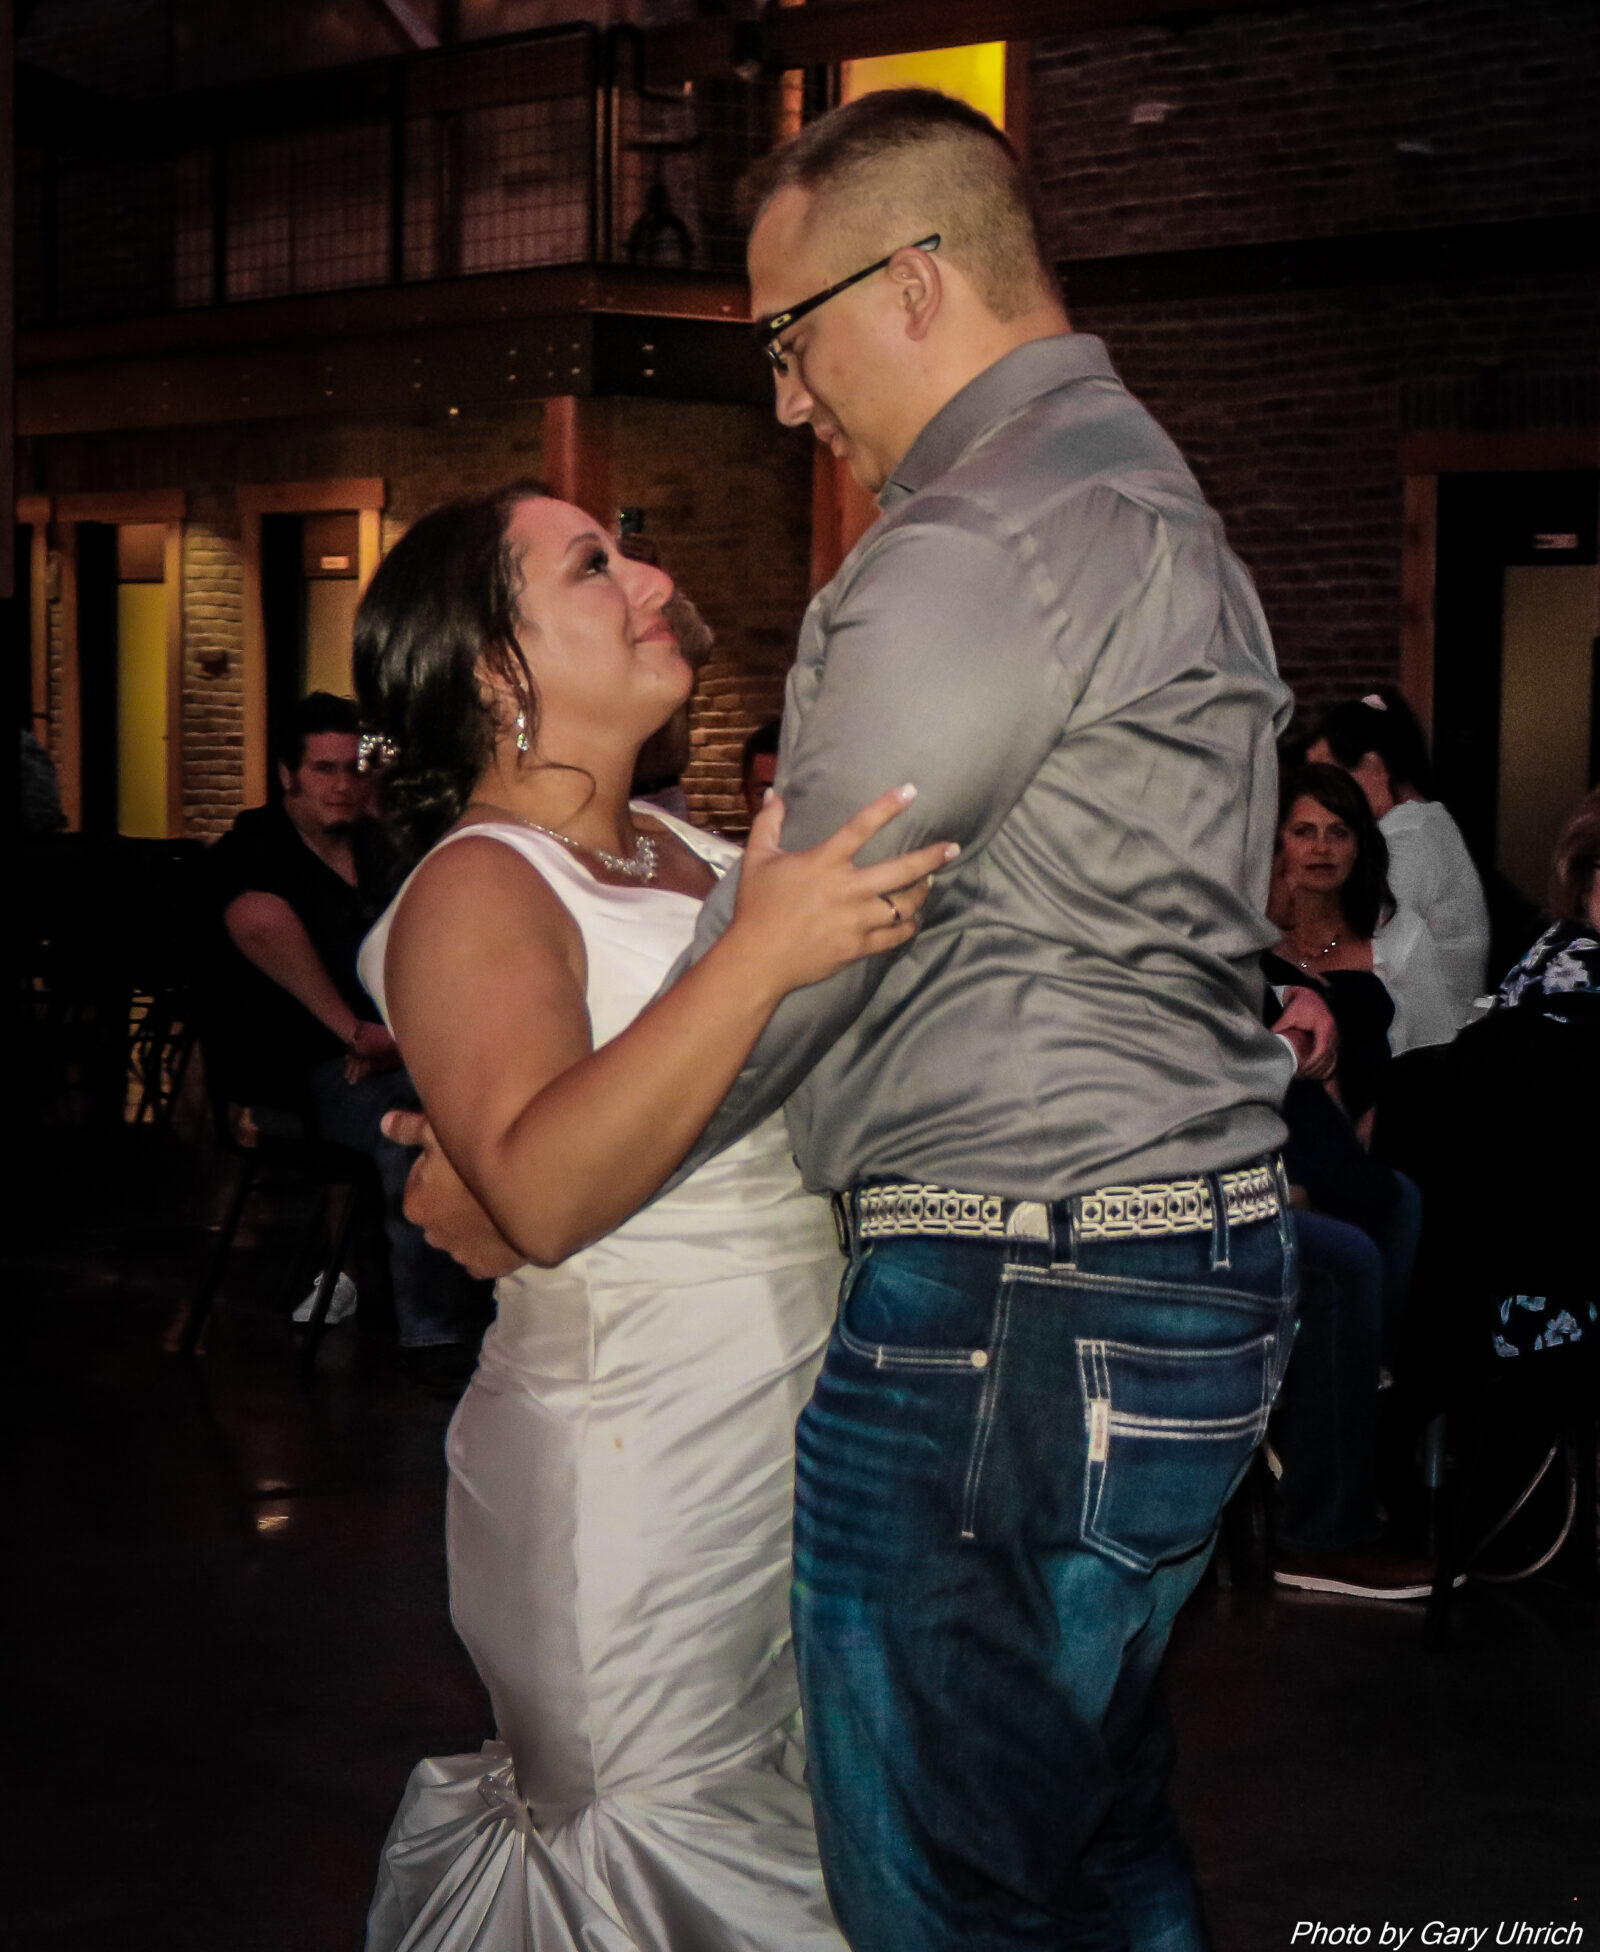 Bride Groom First Dance, Nebraska DJ, Nebraska Photographer, Weborg 21 Centre, The DJ Music System